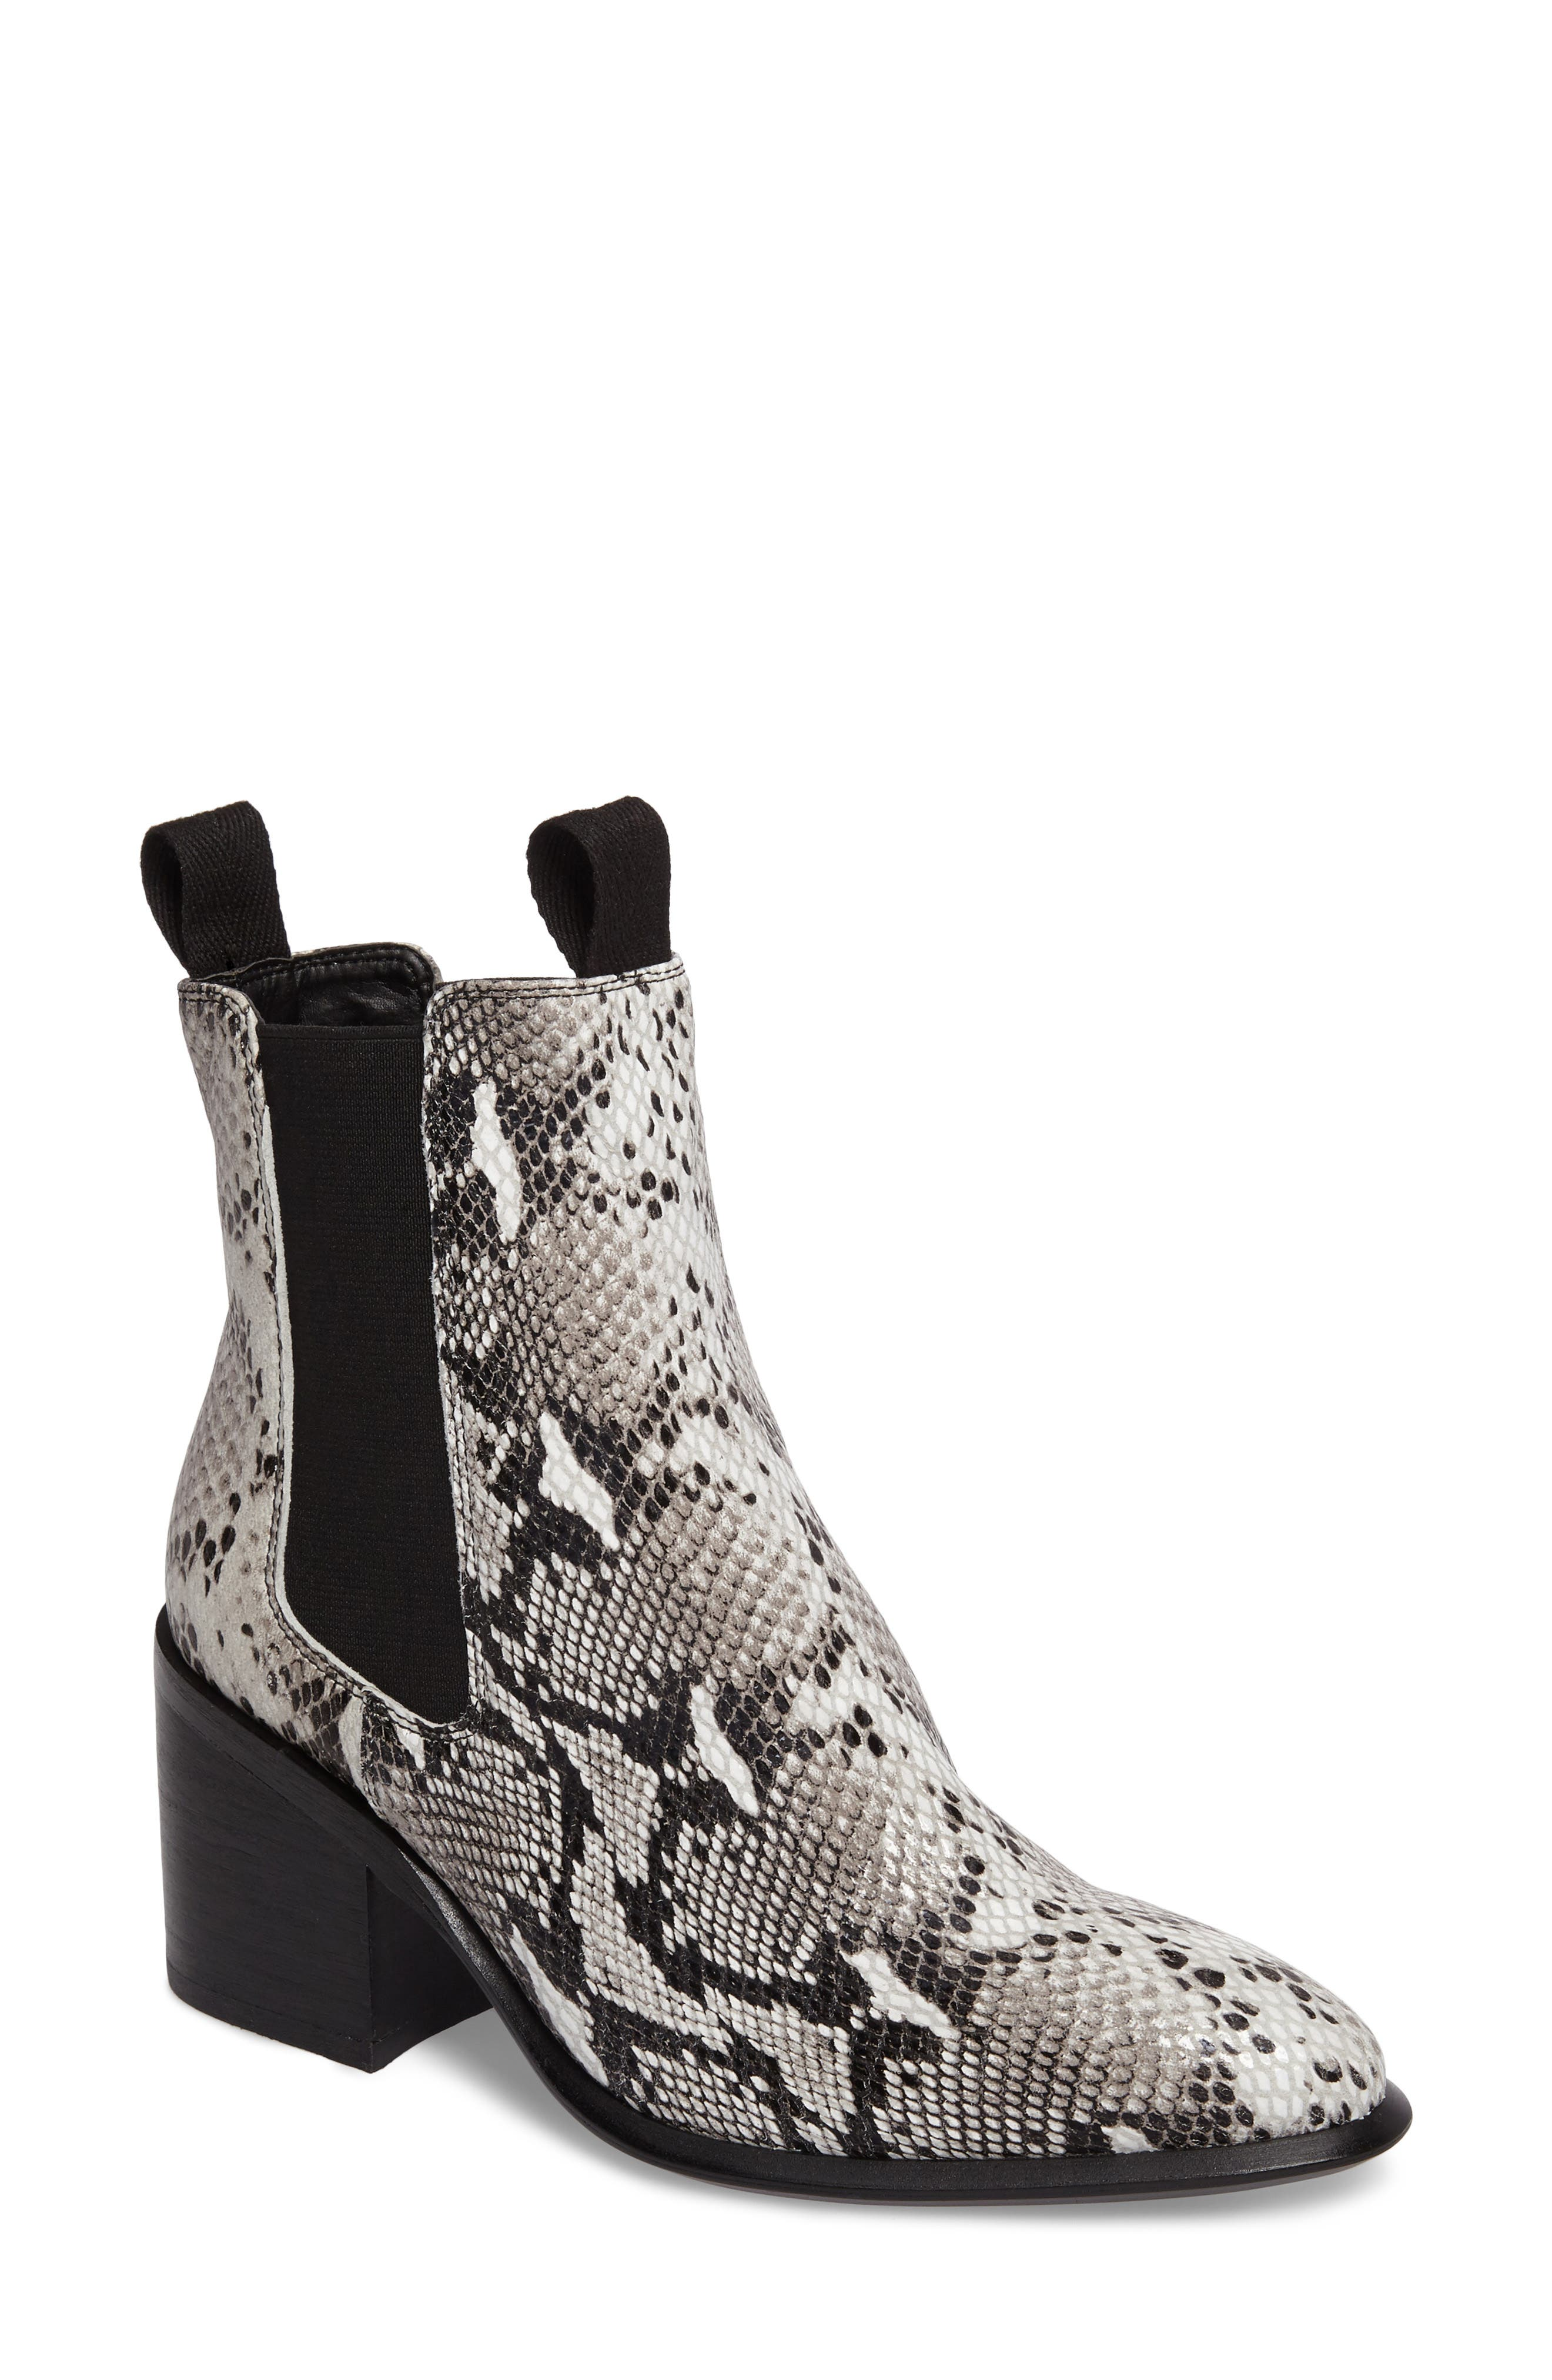 Hampton Bootie,                             Main thumbnail 1, color,                             Natural Snake Print Leather